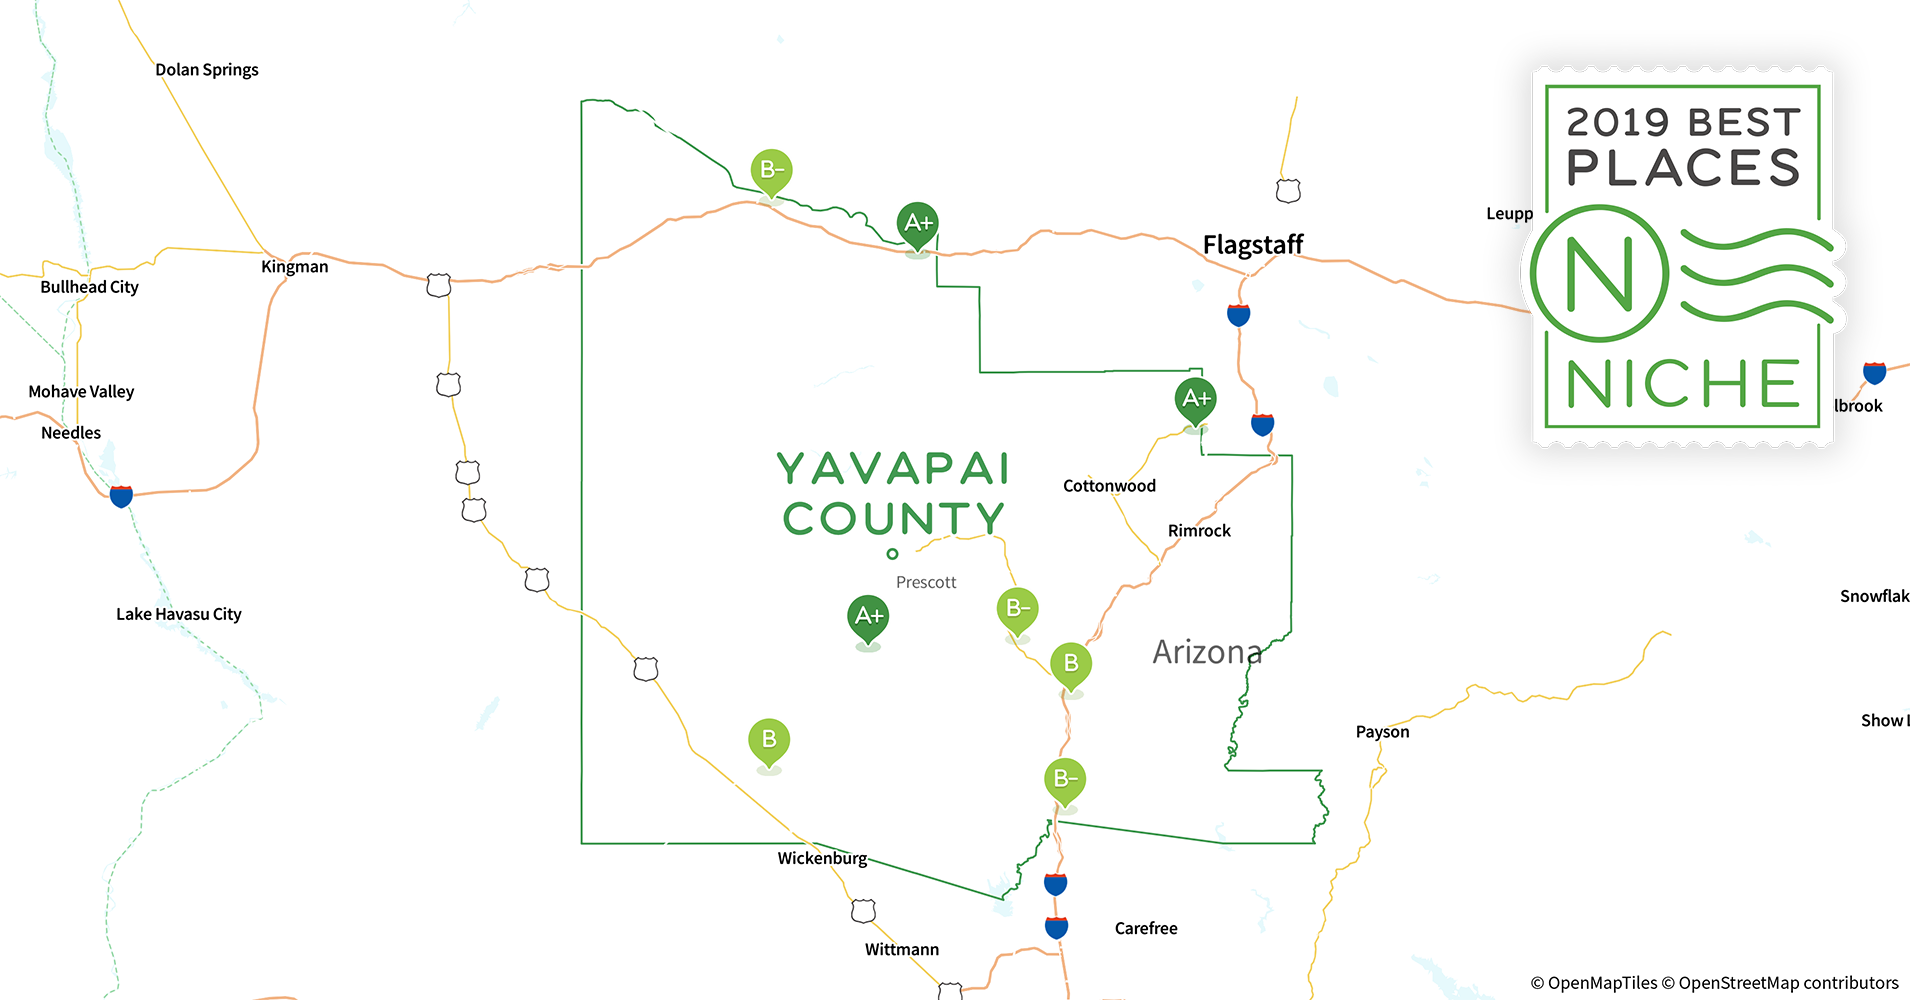 2019 Best Places to Live in Yavapai County, AZ - Niche Yavapai County Map on arizona map, new castle county map, greene county map, boise county map, litchfield county map, hamilton county map, grant county map, sheridan county map, crenshaw county map, coconino county map, pima county map, navajo county map, liberty county map, pinal county map, gila county map, maricopa county map, perry county map, columbia county map, carroll county map, mohave county map,